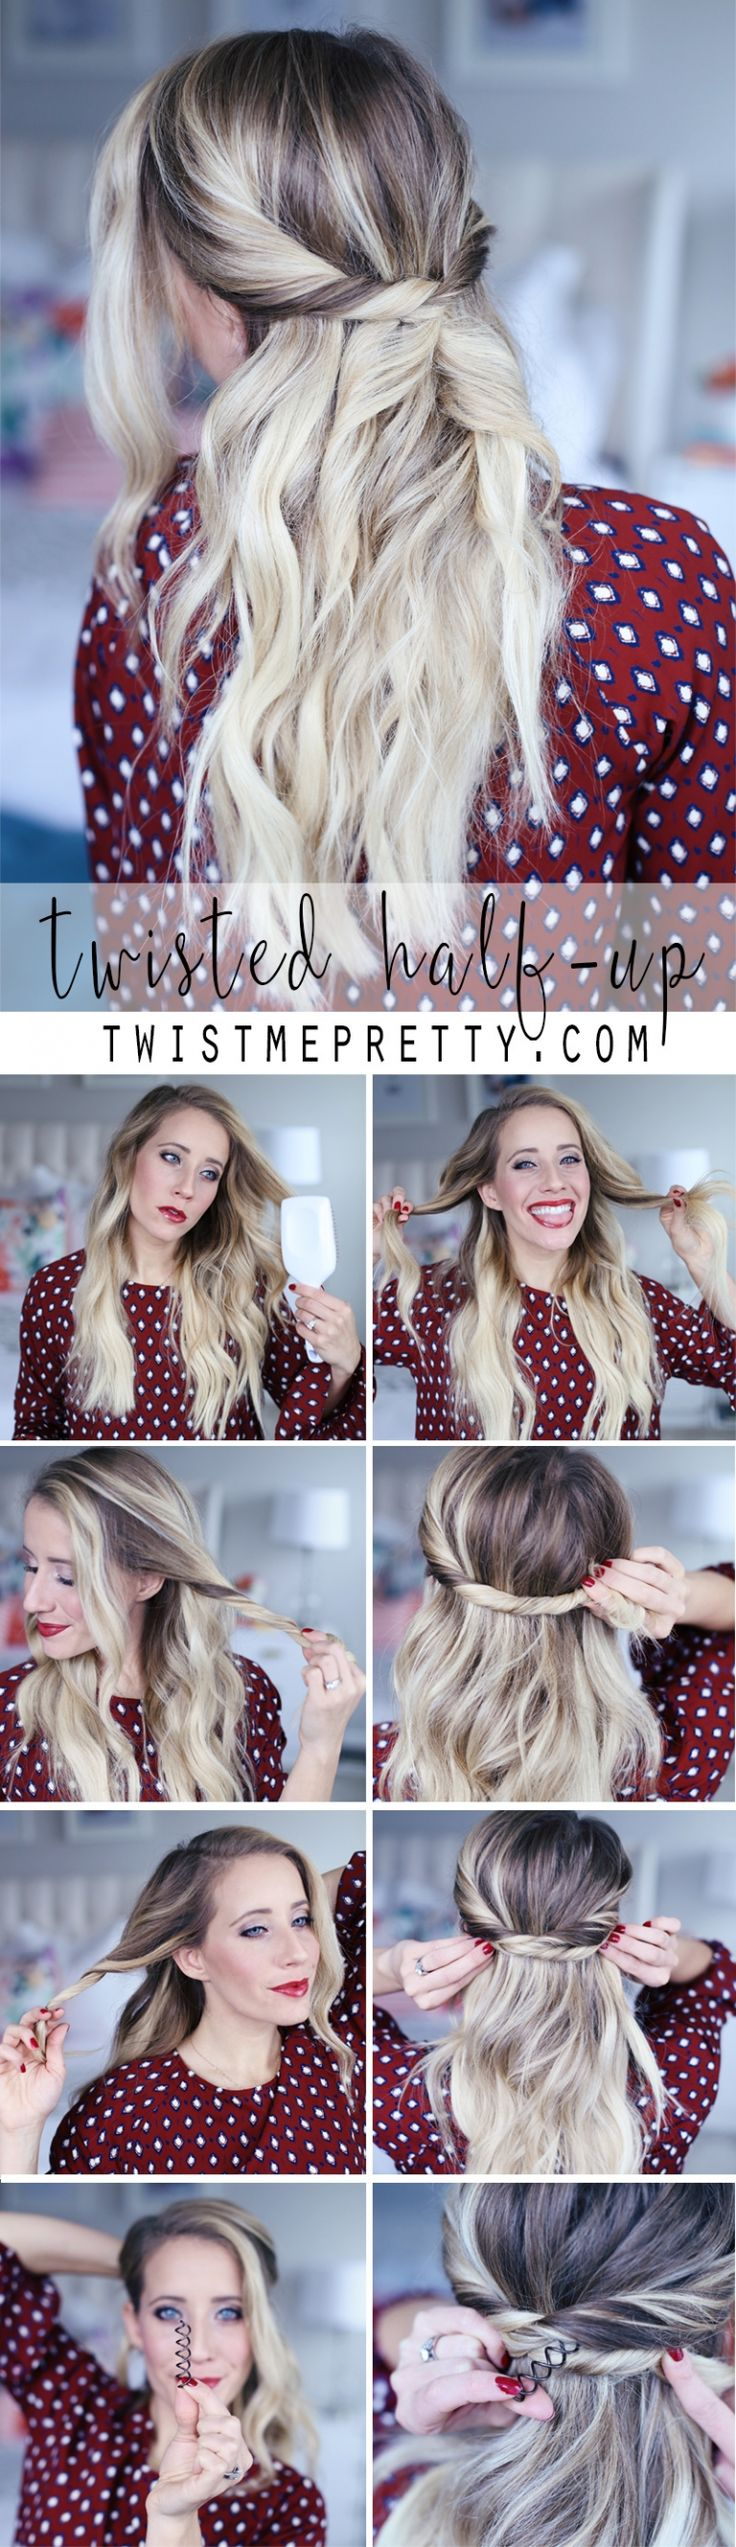 Twisted half-up style made easy with a Goody Spin Pin, and Abby's 8 easy steps. Plus another style in page